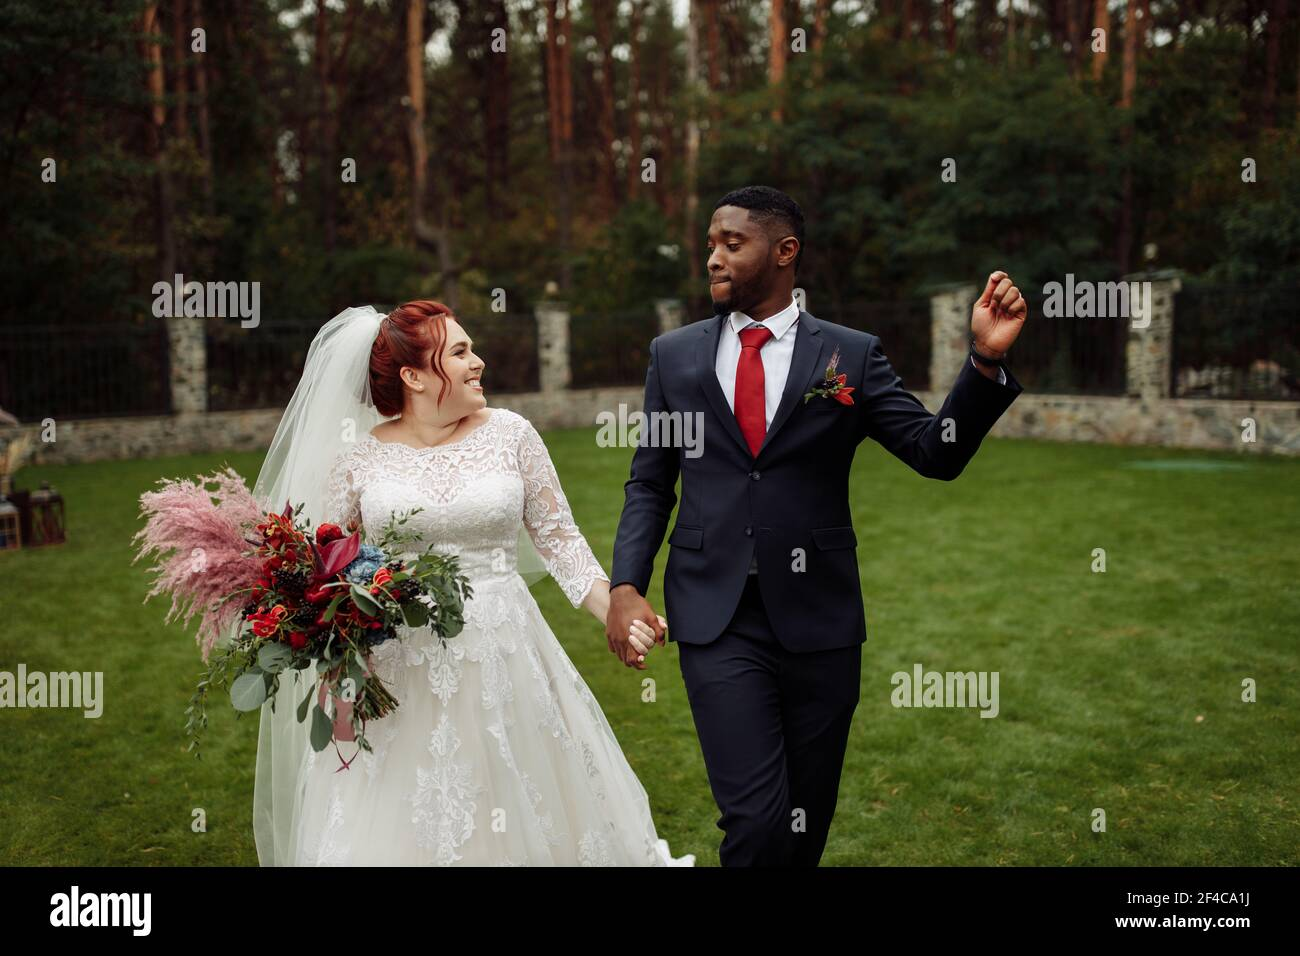 https://c8.alamy.com/comp/2F4CA1J/joyful-couple-walking-at-the-park-handsome-african-american-man-with-lovely-white-woman-on-wedding-day-beautiful-bride-with-charming-groom-enjoy-2F4CA1J.jpg